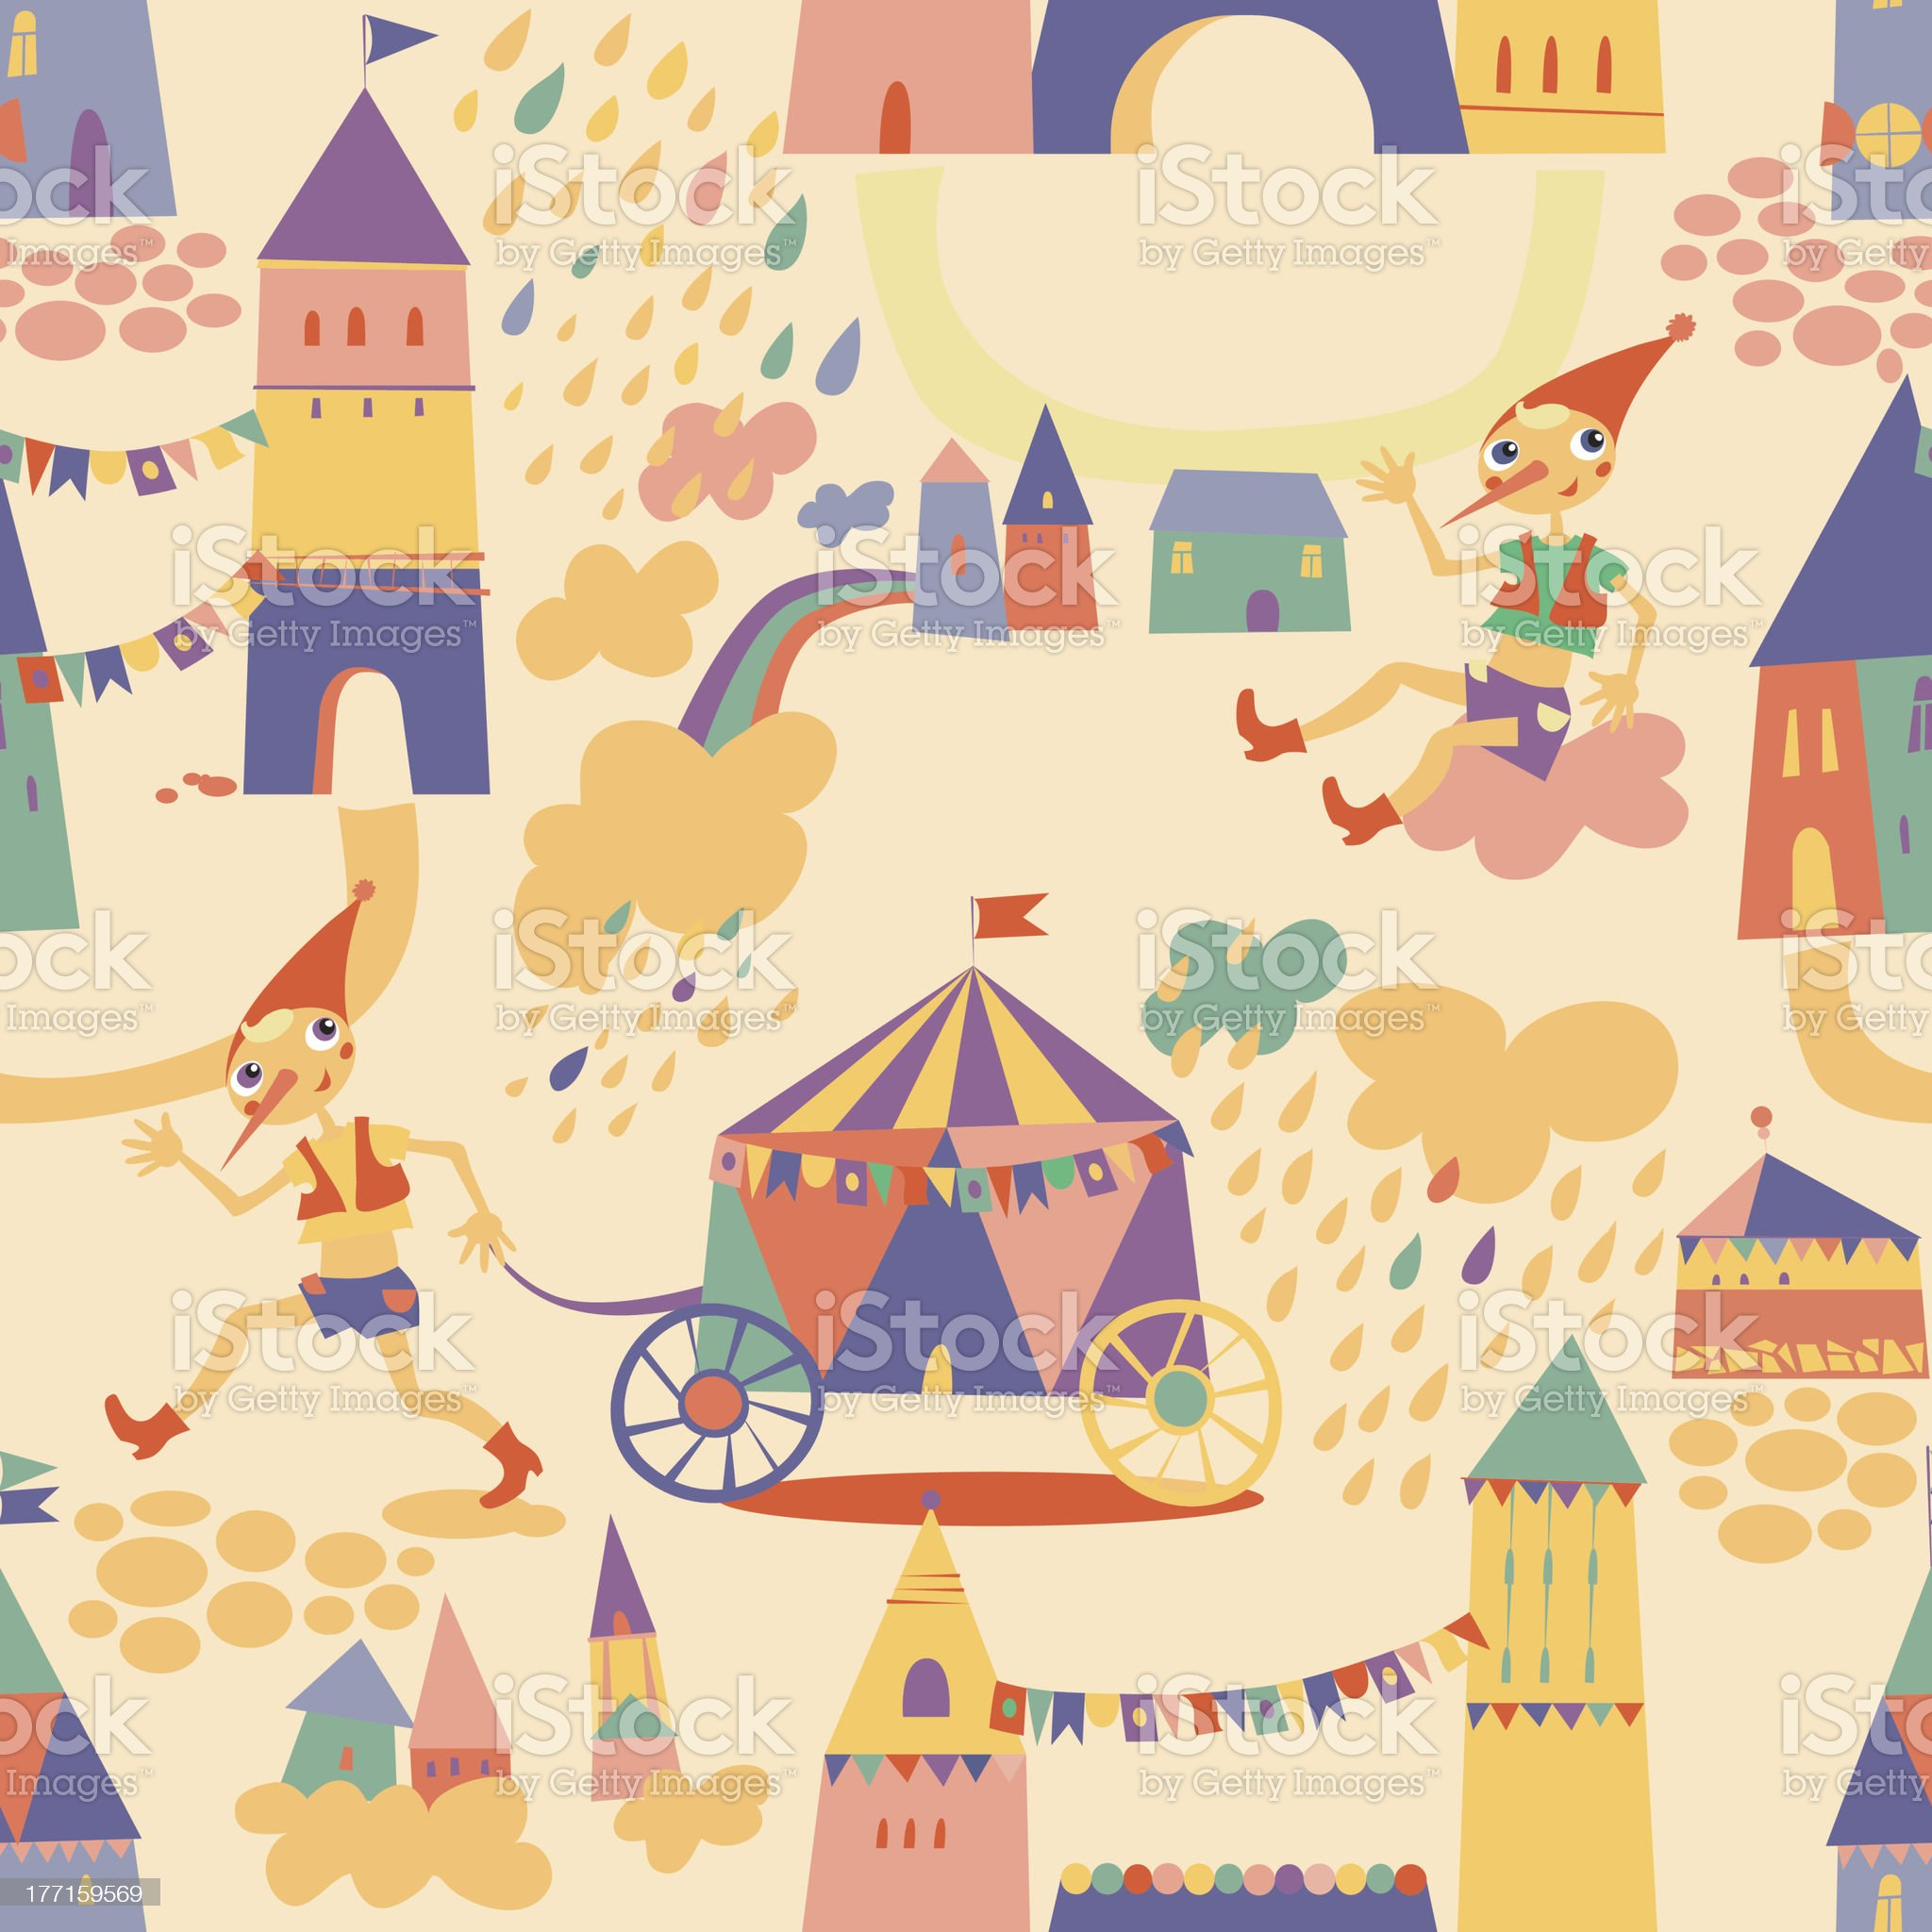 Seamless pattern with houses for children's background. royalty-free stock vector art